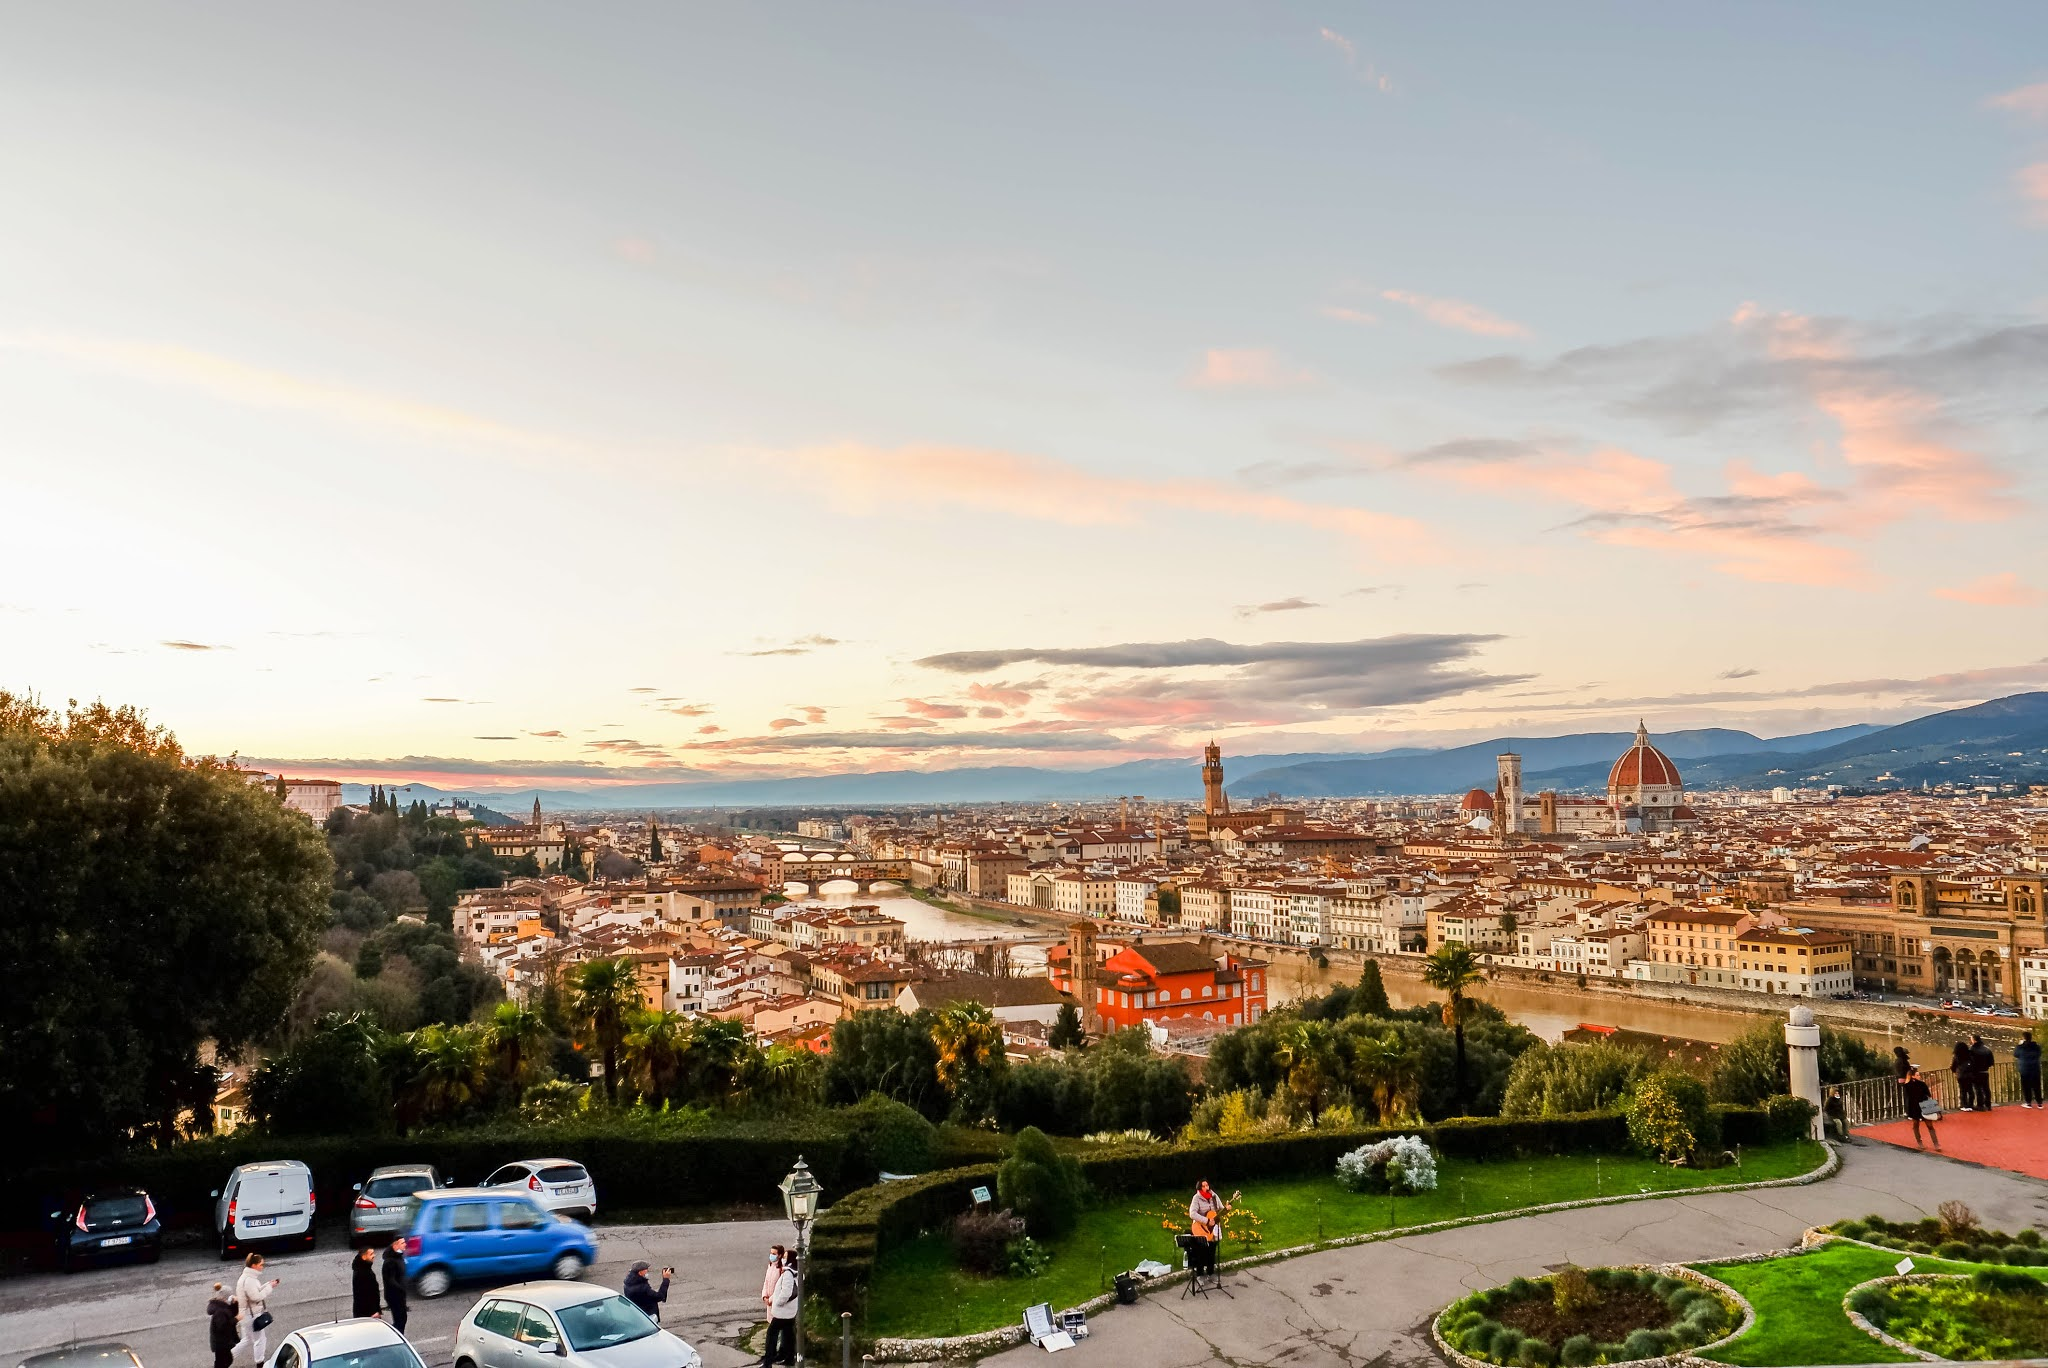 Piazzale Michelangelo florence italy, florence italy, sunset in florence italy, panoramic view florence